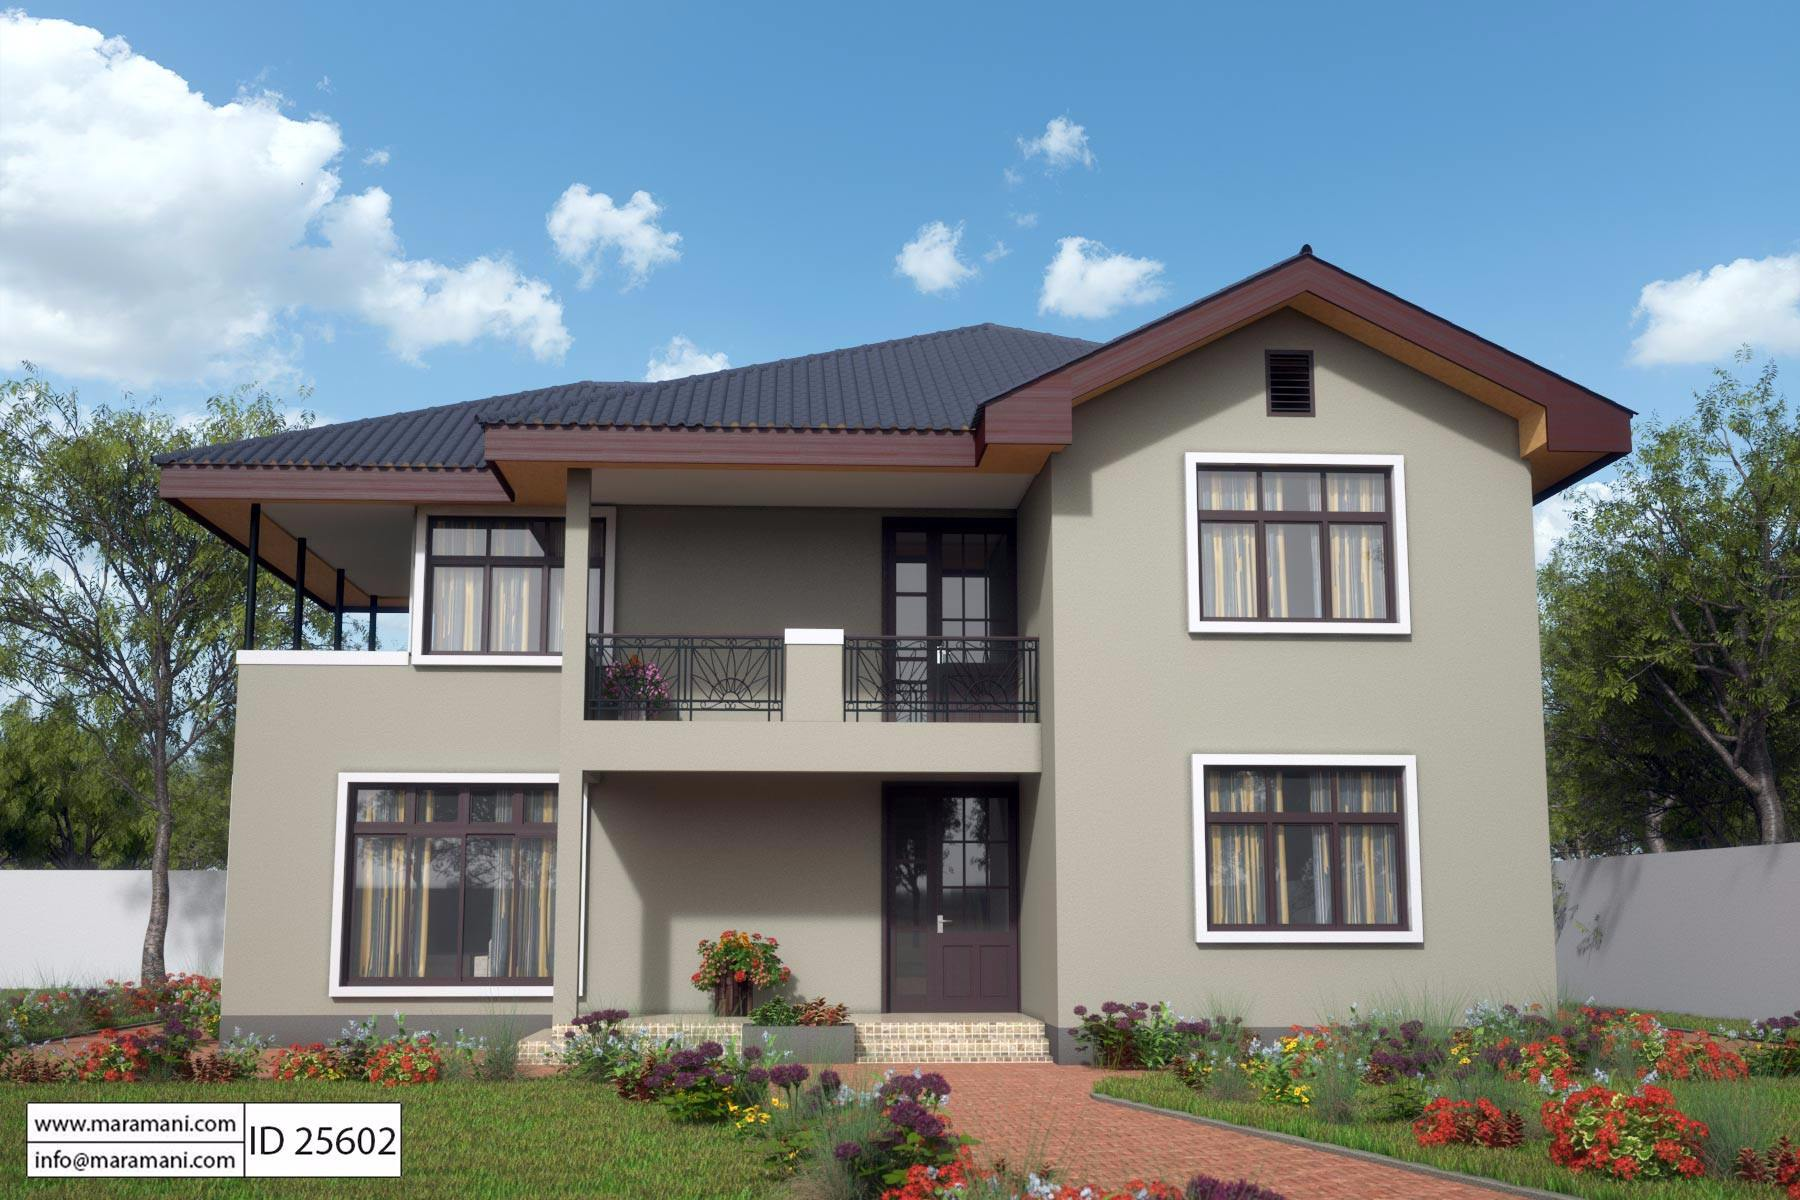 5 bedroom house design id 25602 house plans by maramani for 5 bedroom house plan designs